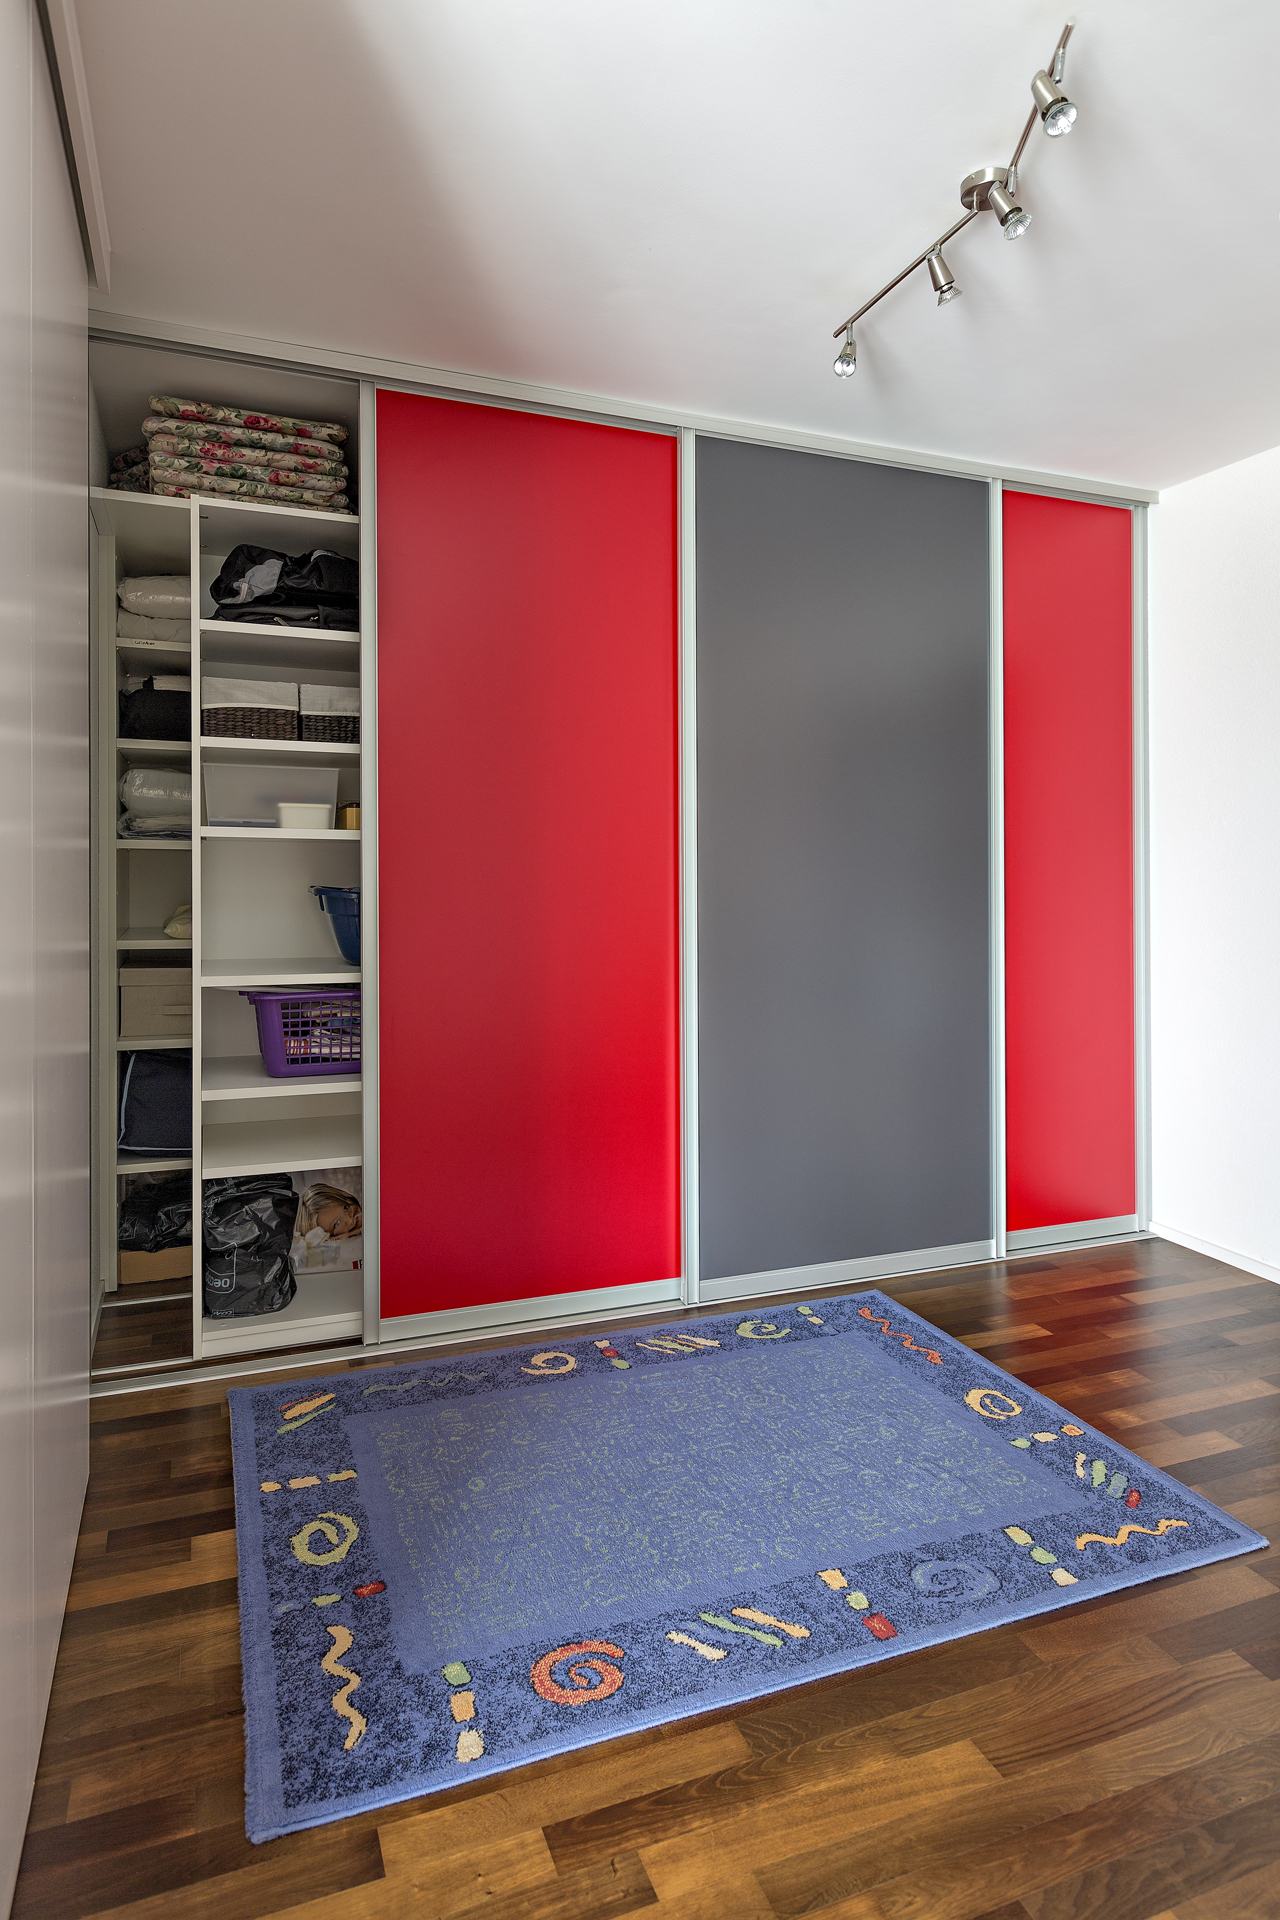 schiebelemente im raumhohen mehrzweckschrank mit schiebet ren in rot und graphitgrau auf zu. Black Bedroom Furniture Sets. Home Design Ideas